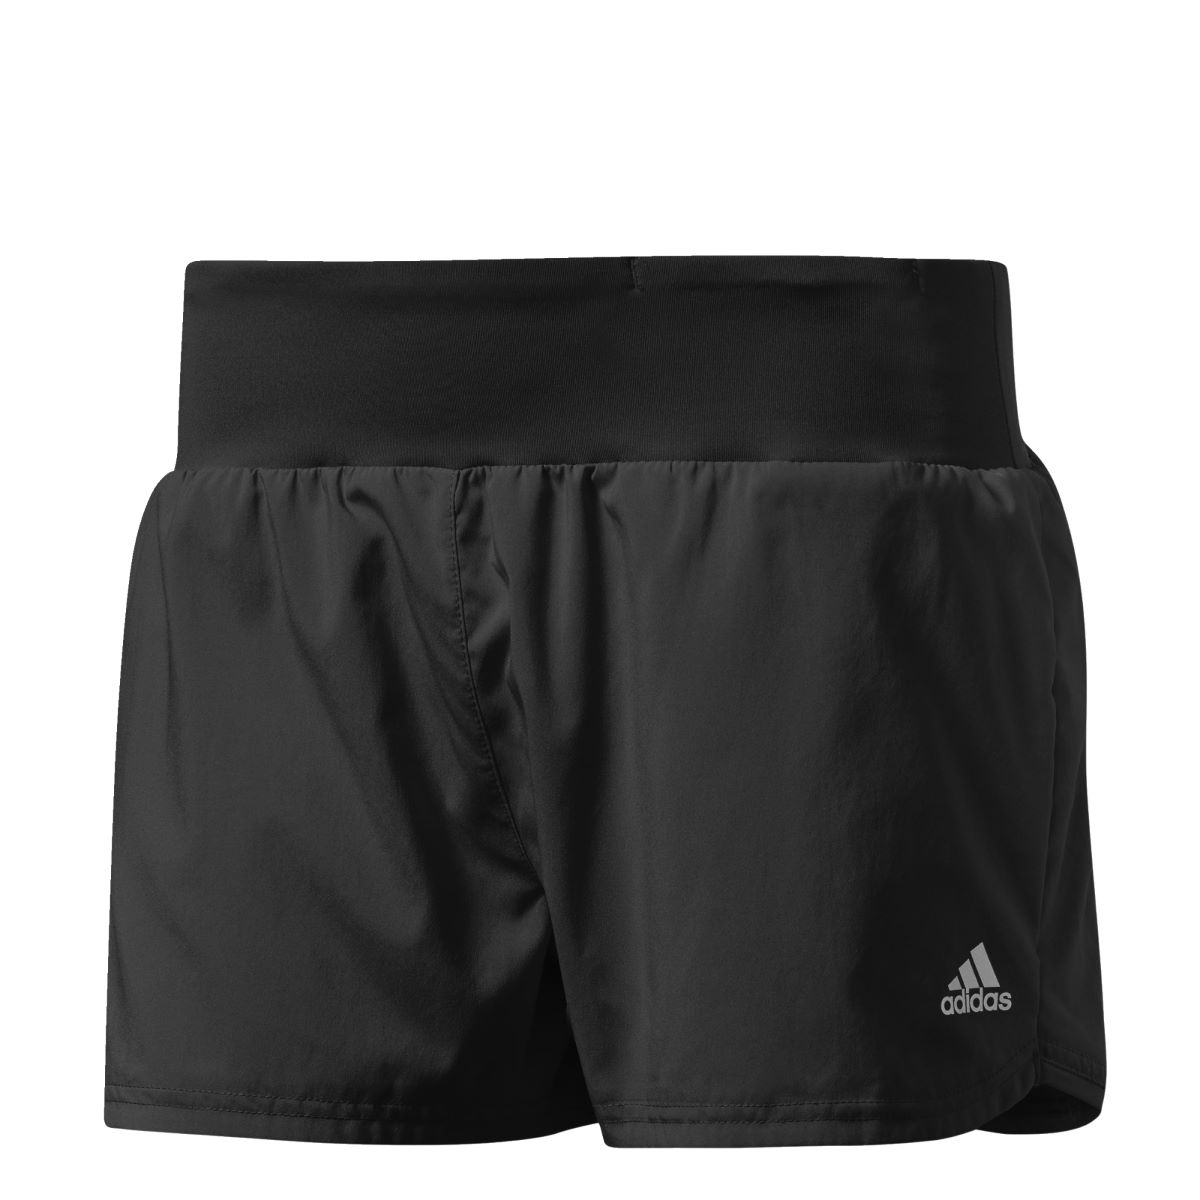 Adidas Womens Grete Short (SS17)   Running Shorts